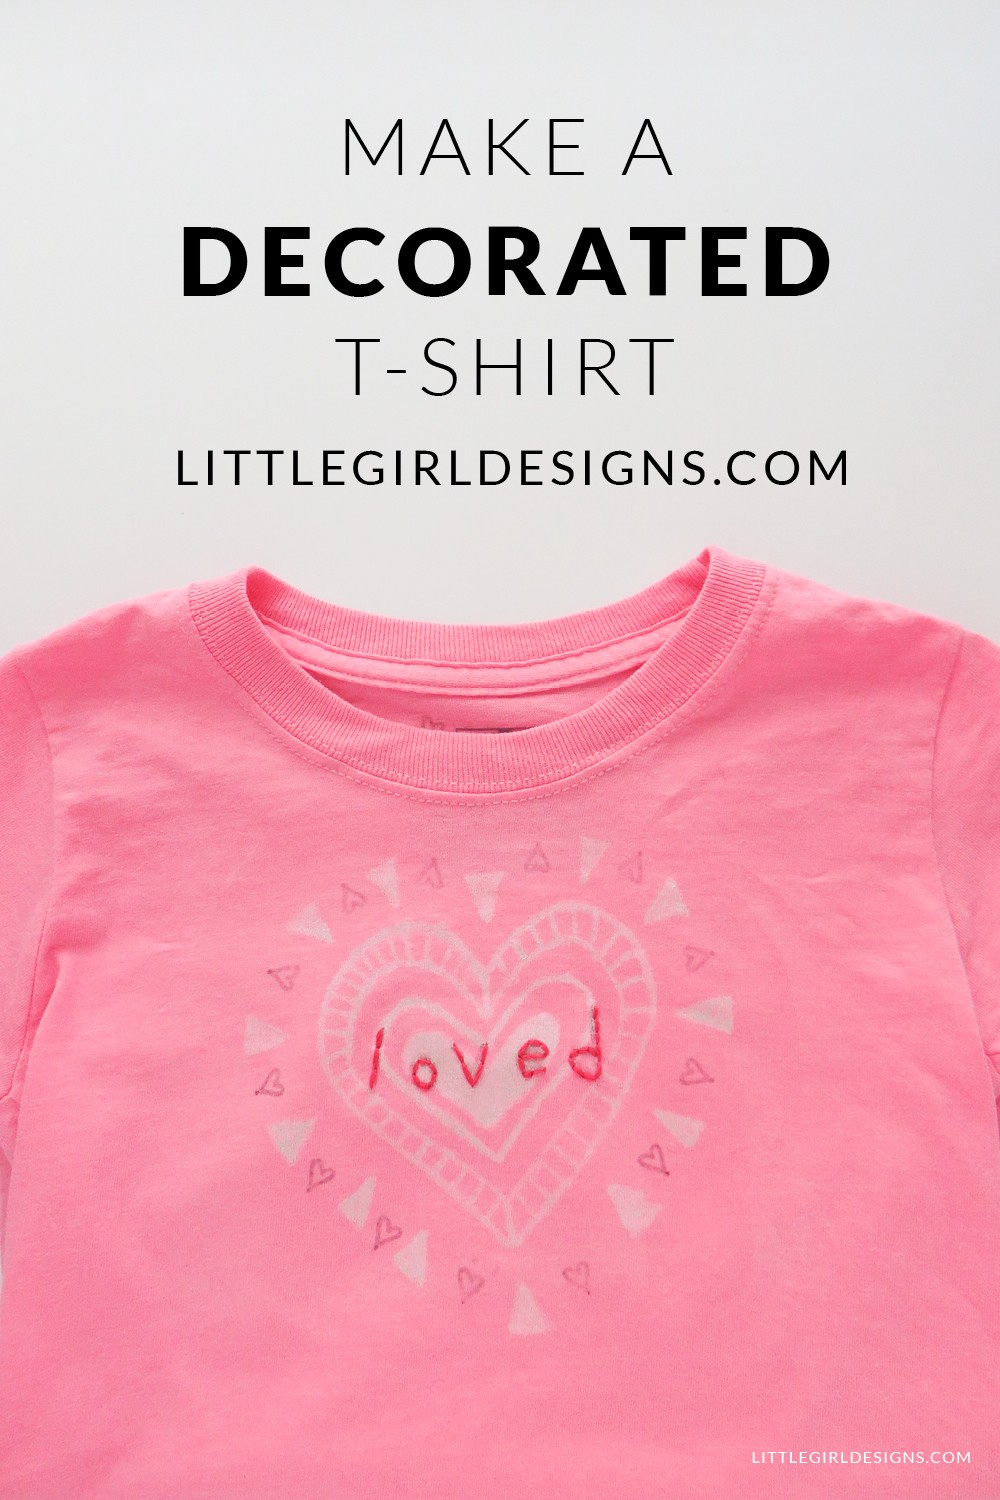 Make A Decorated Tshirt  Use A Paint Pen, Ironon Transfer